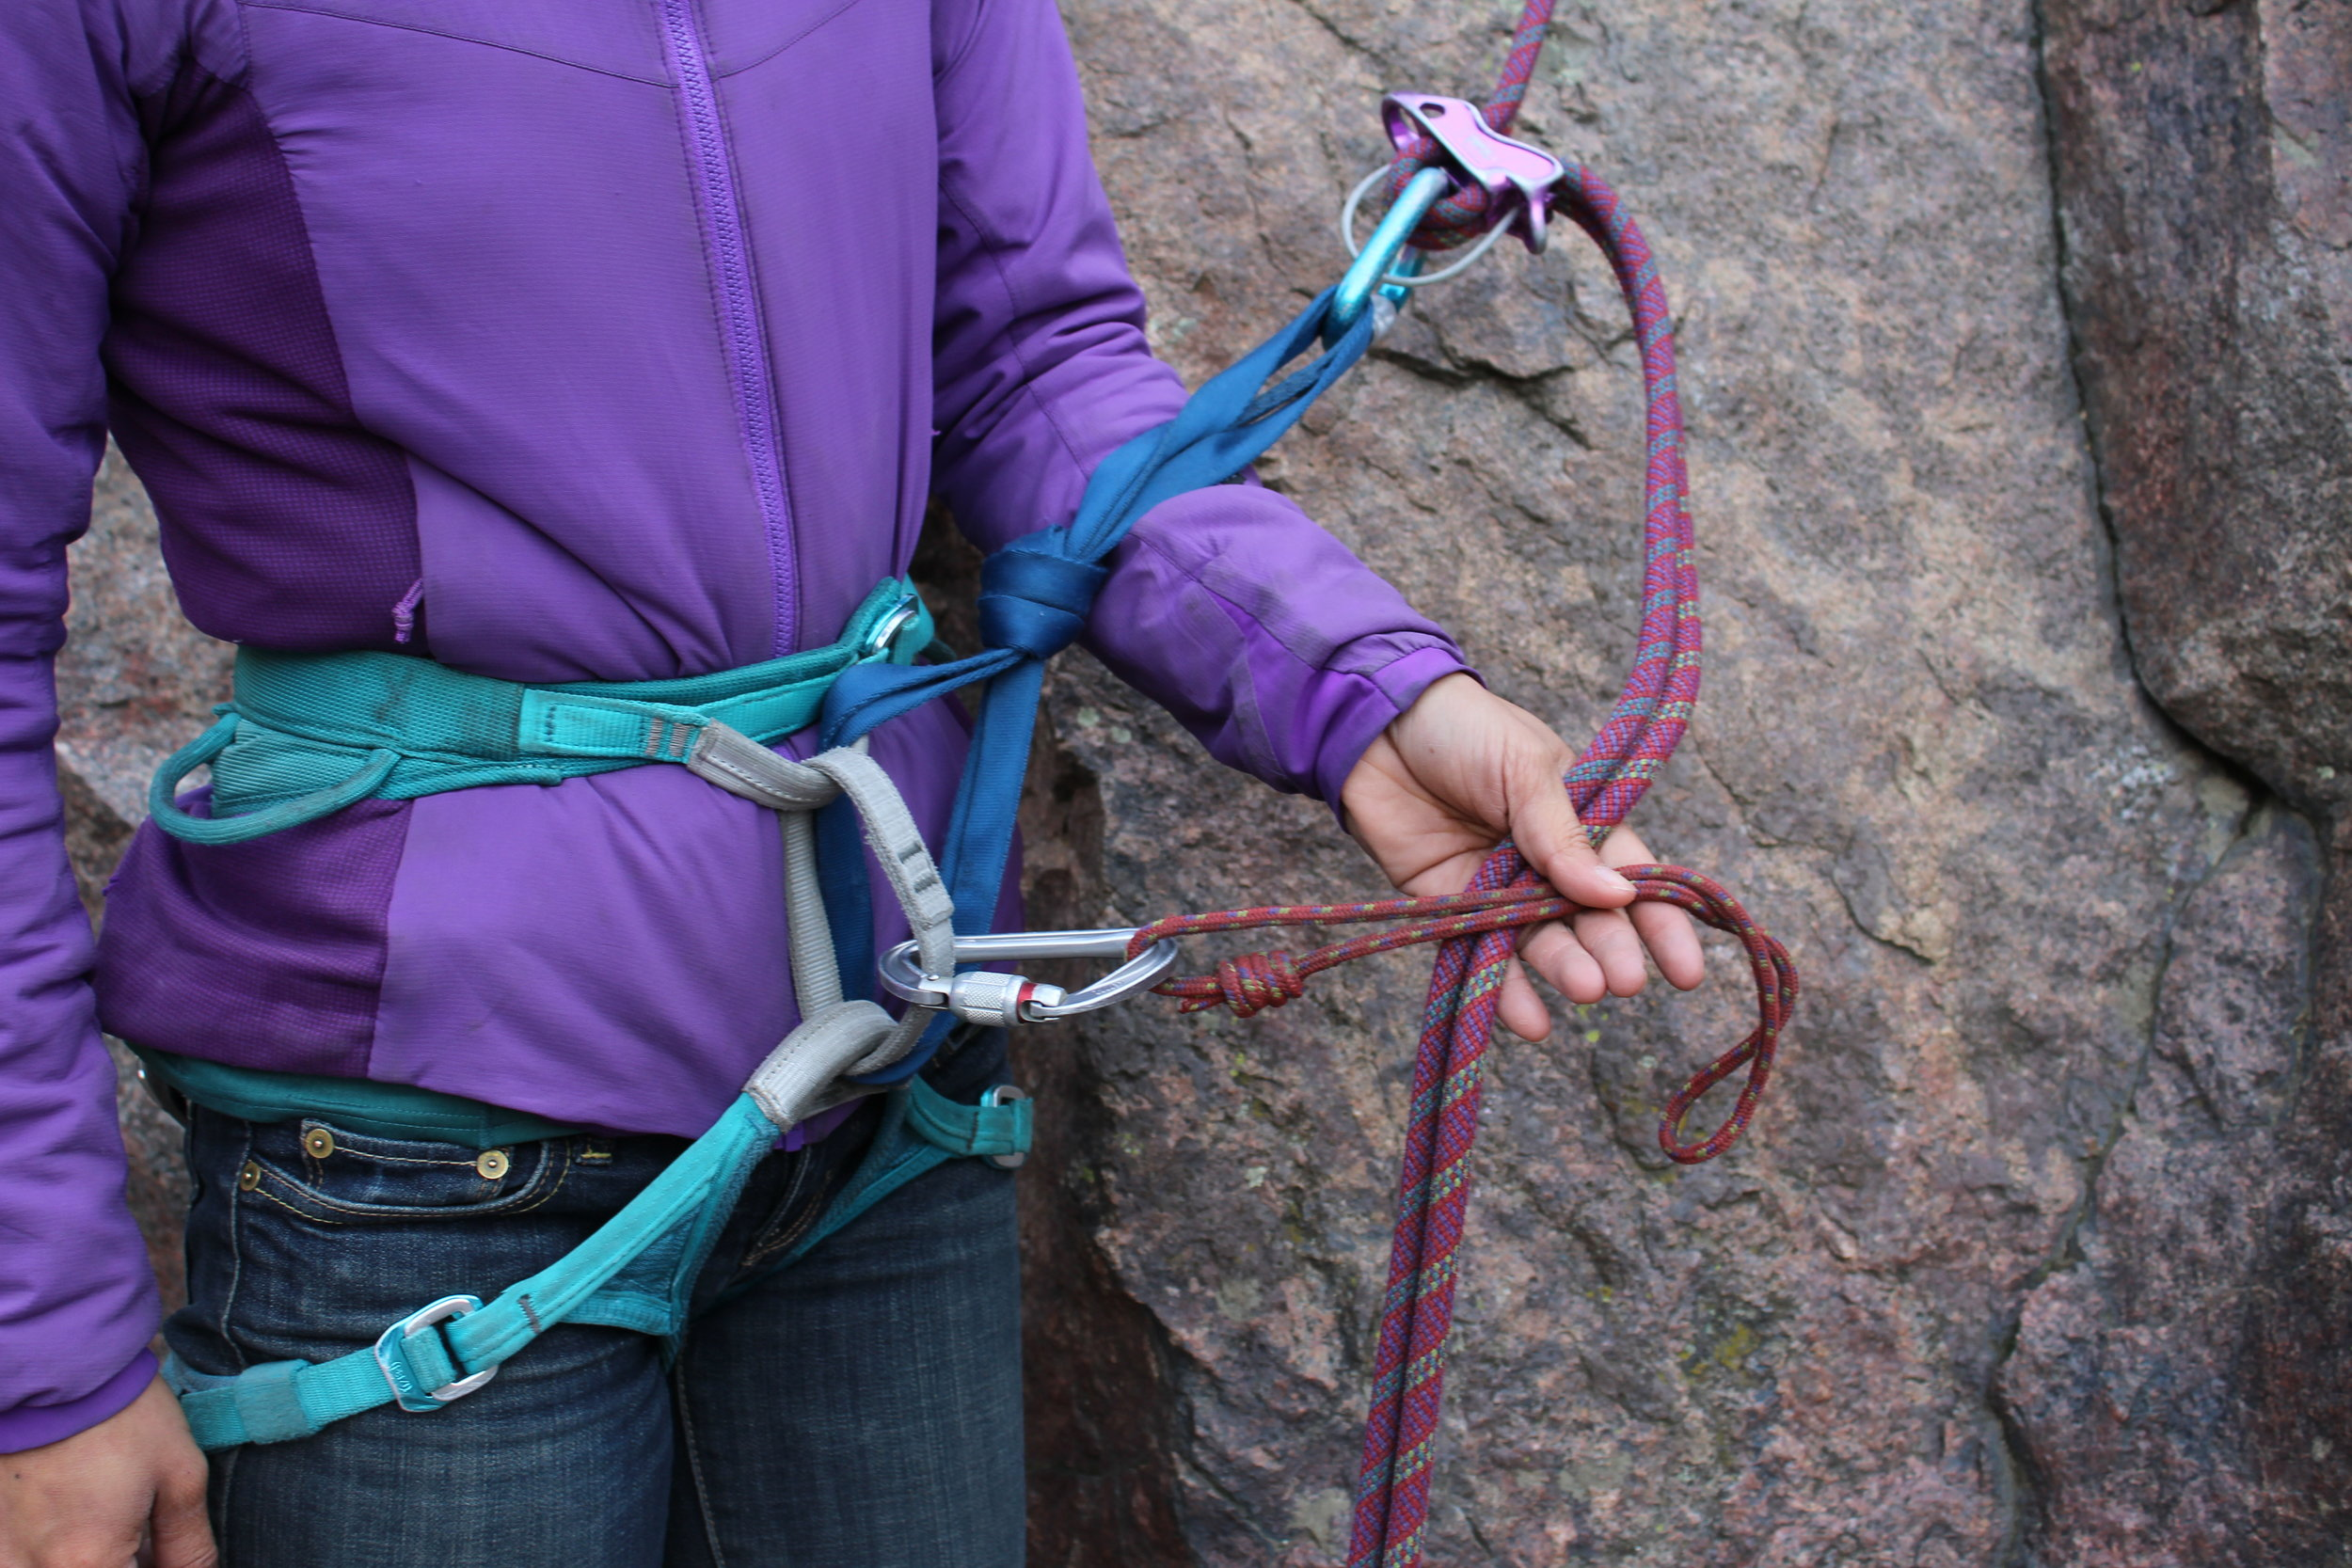 An autoblock friction hitch is a great option when tying a rappel backup. A small loop of 5mm nylon can be quickly deployed for the task.